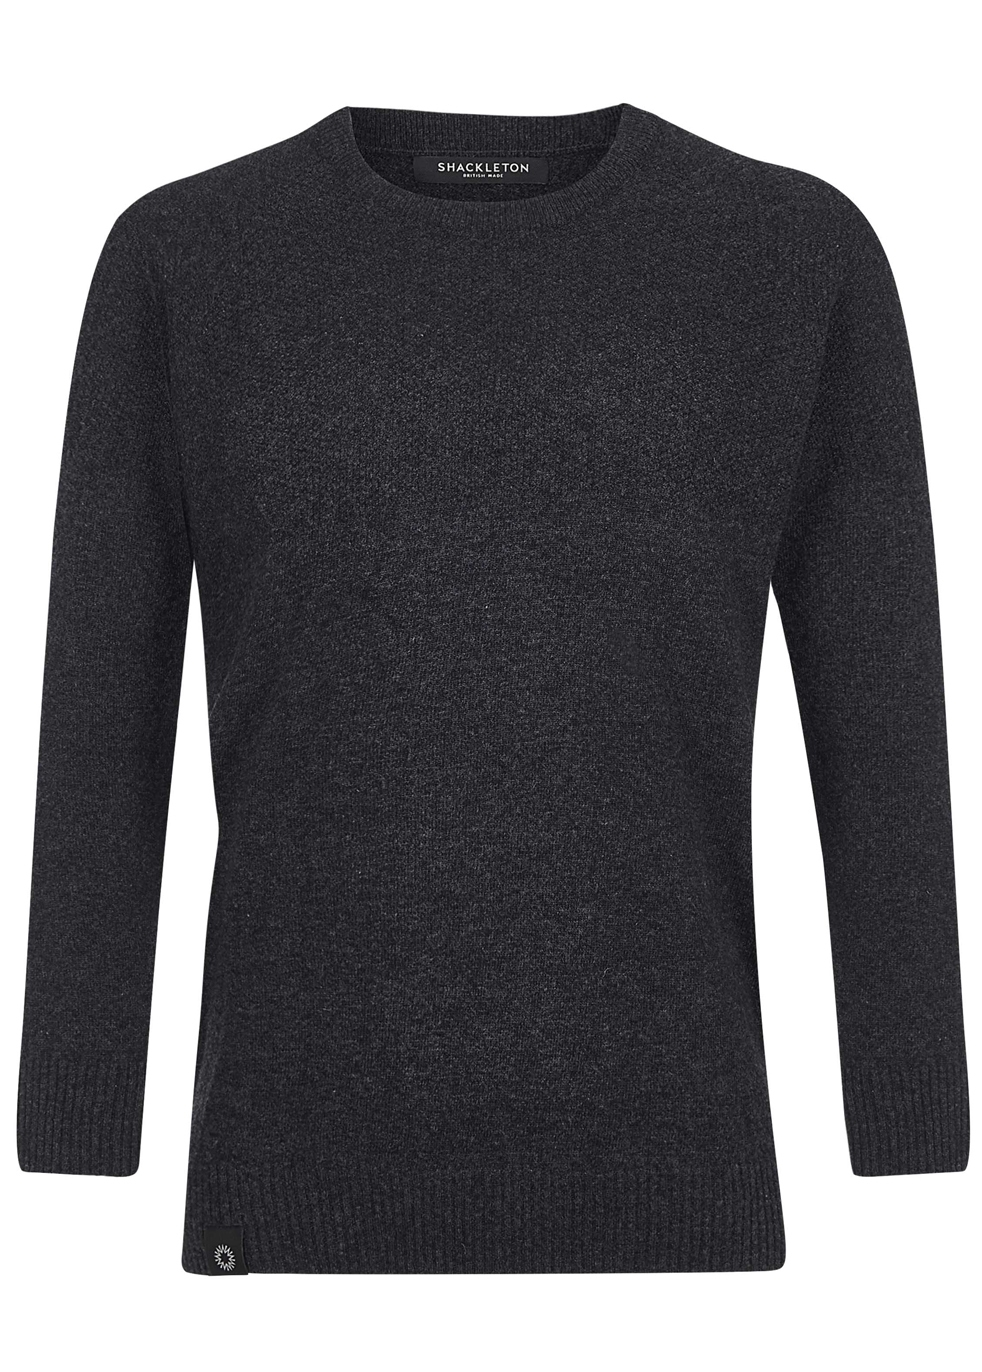 SHACKLETON Dulwich Sweater - Charcoal